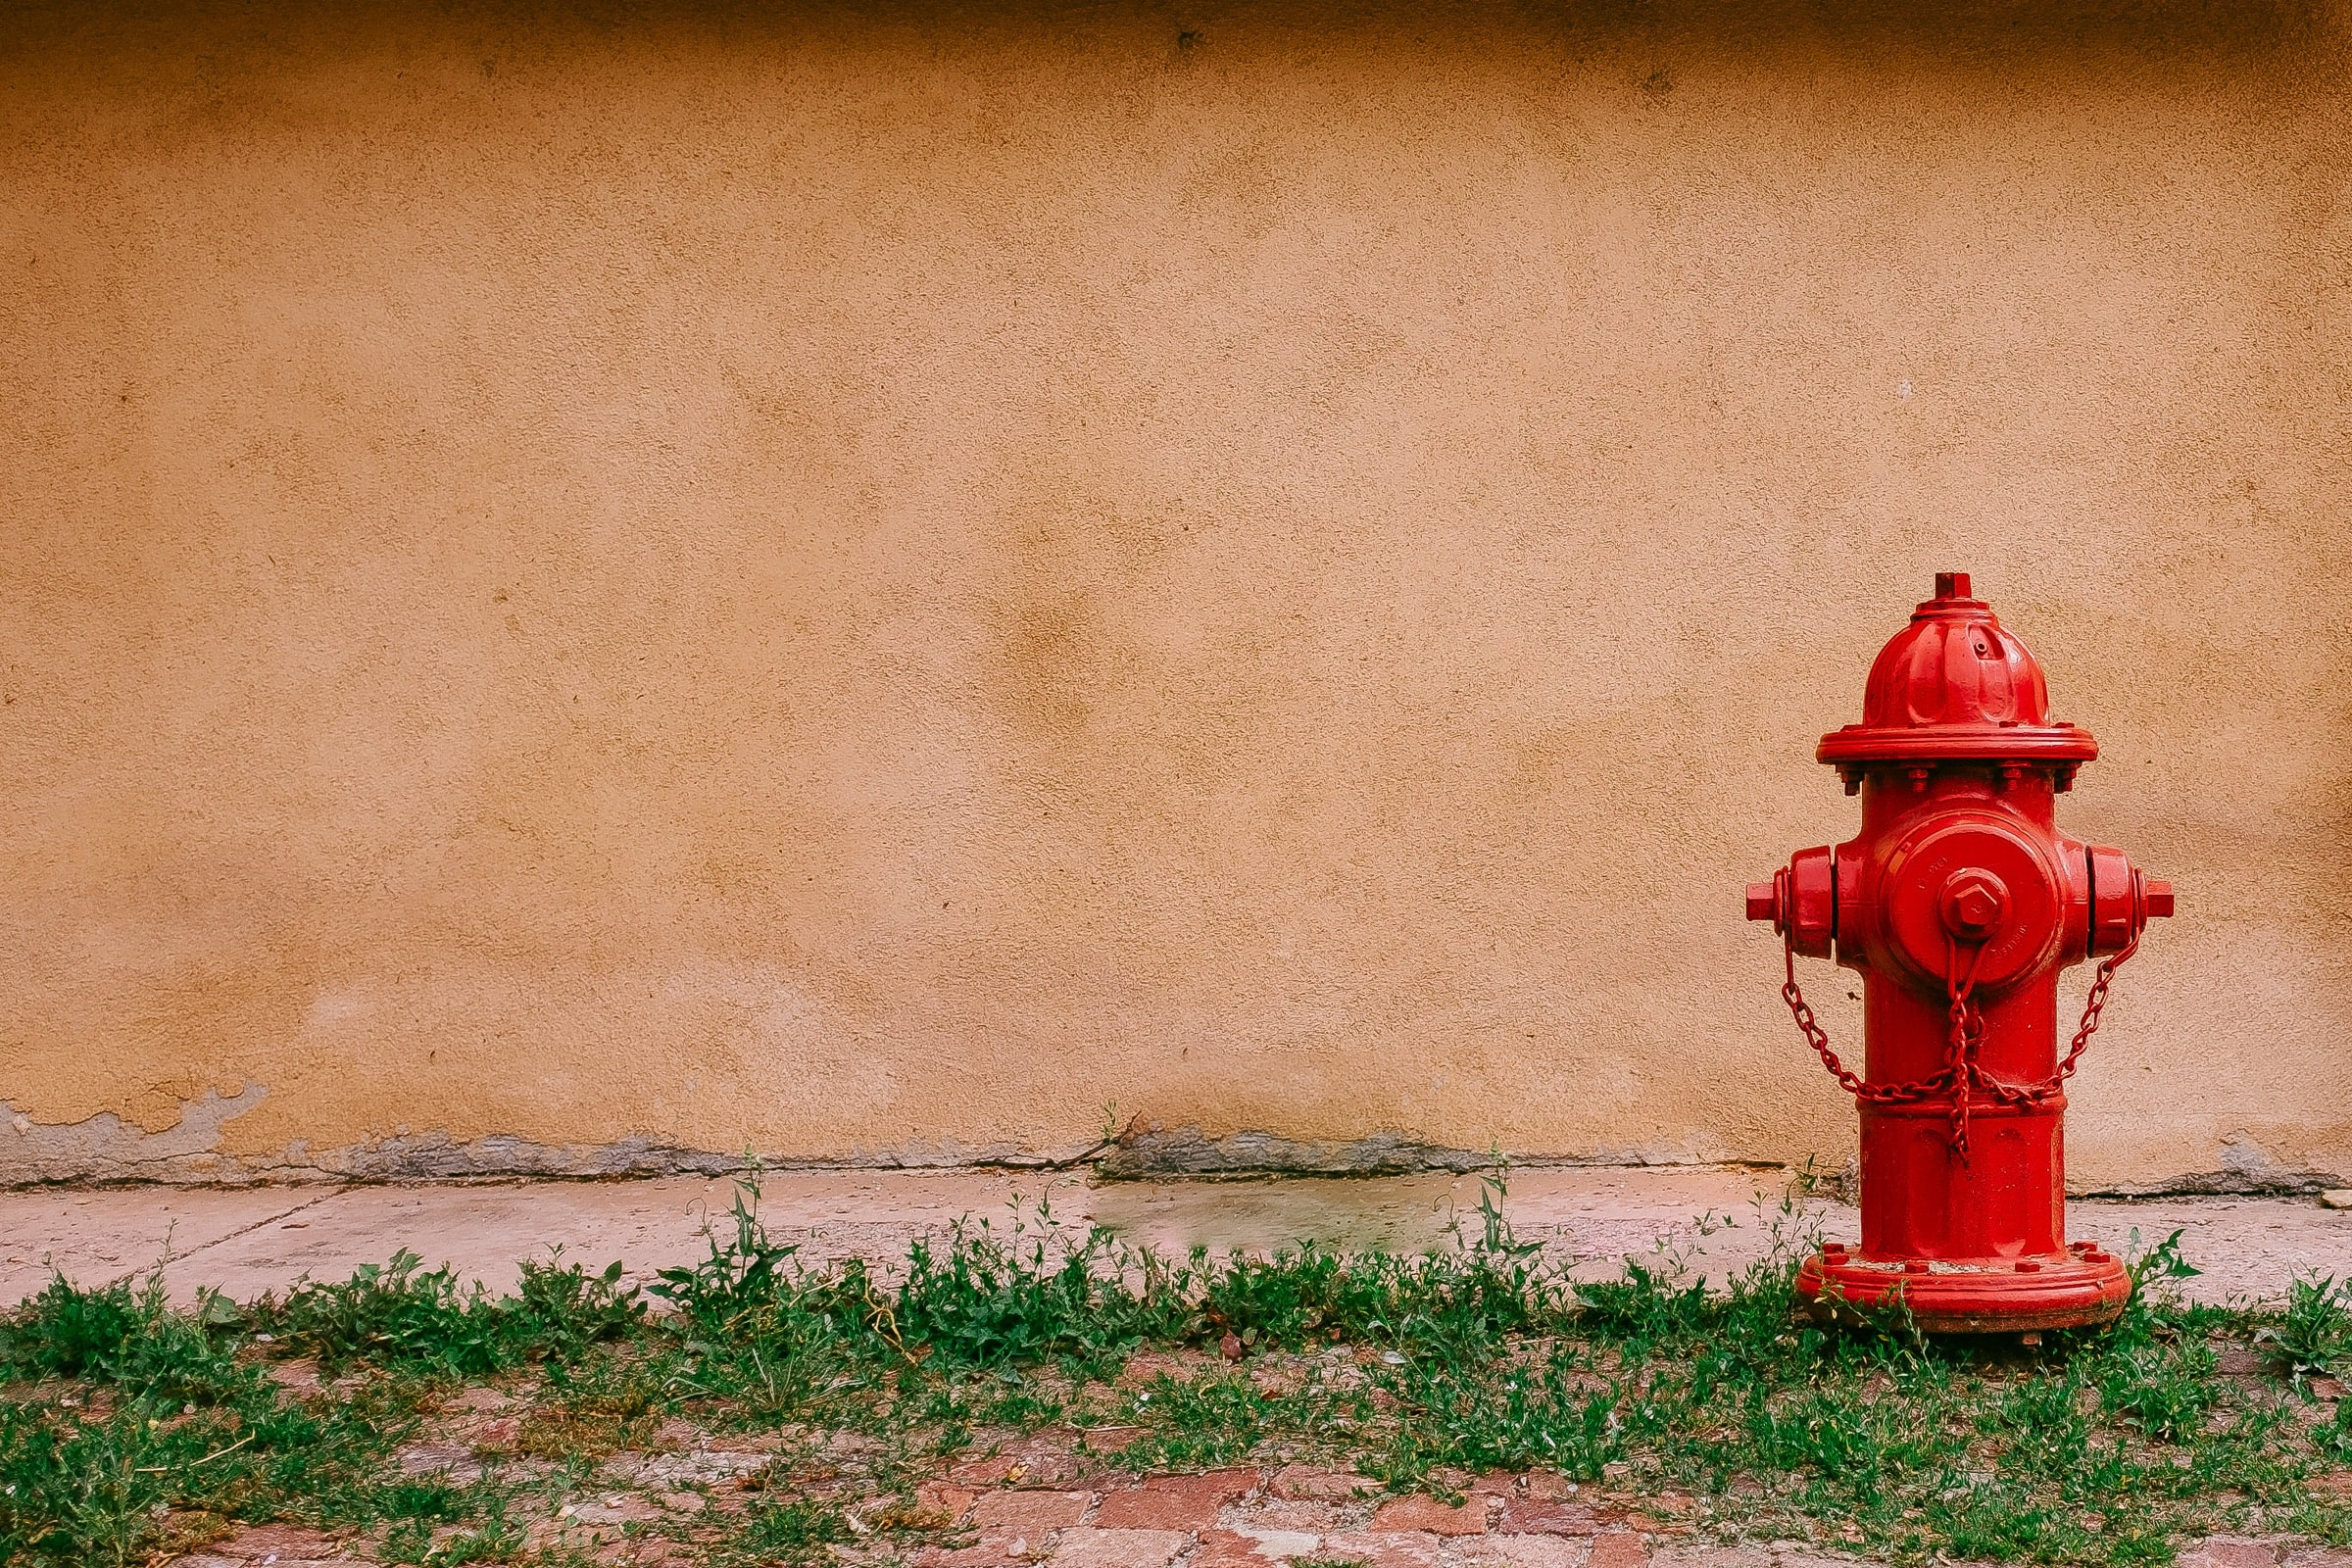 fire hydrant near beige painted wall